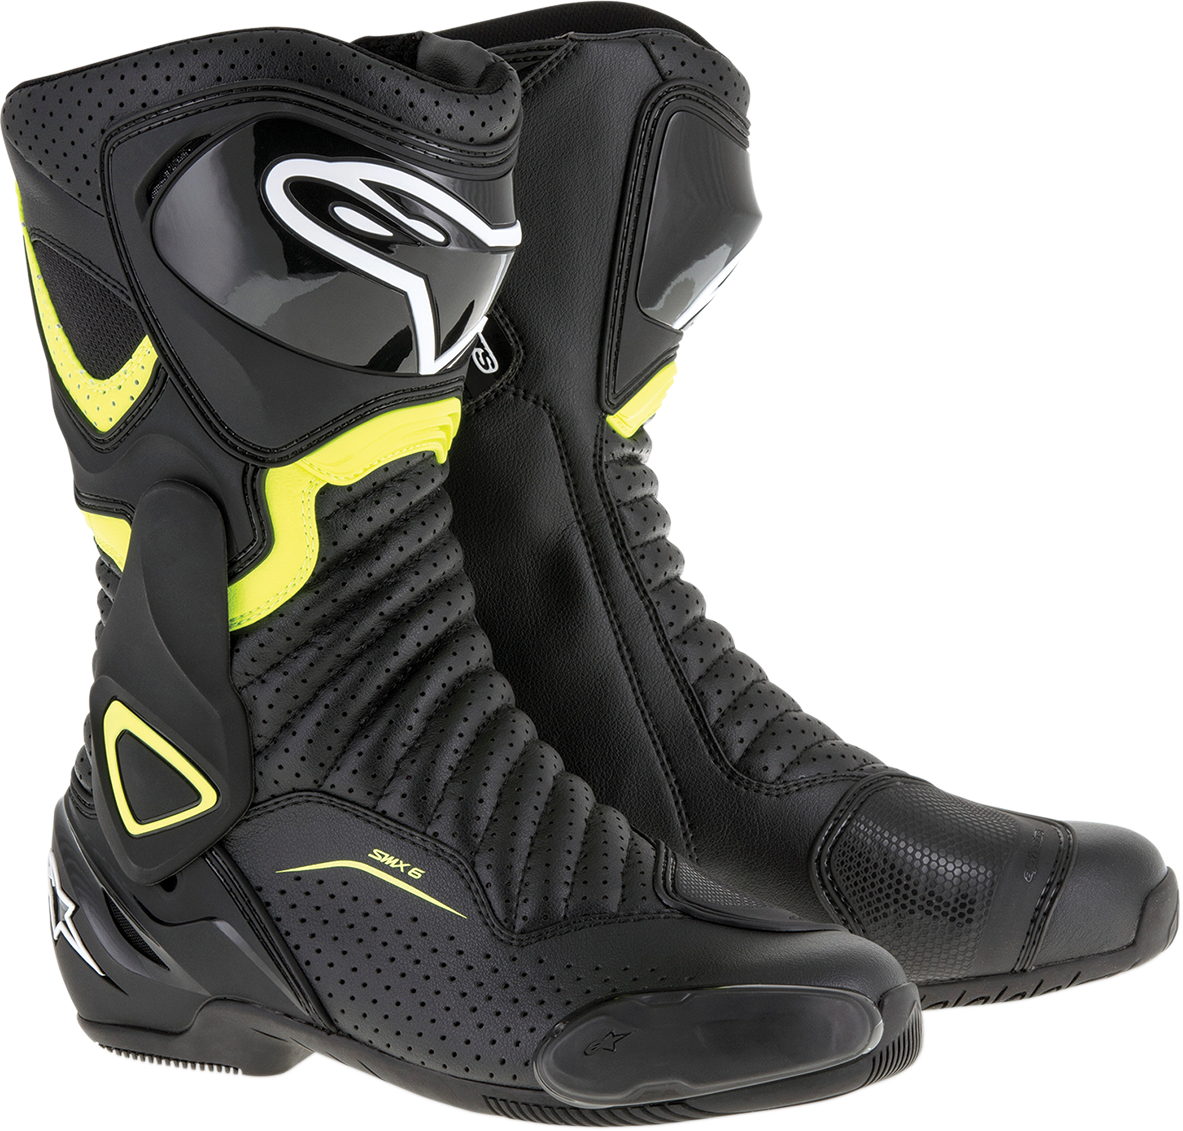 Mens Alpinestars Black Yellow SMX-6 V2 Motorcycle Riding Street Racing Boots